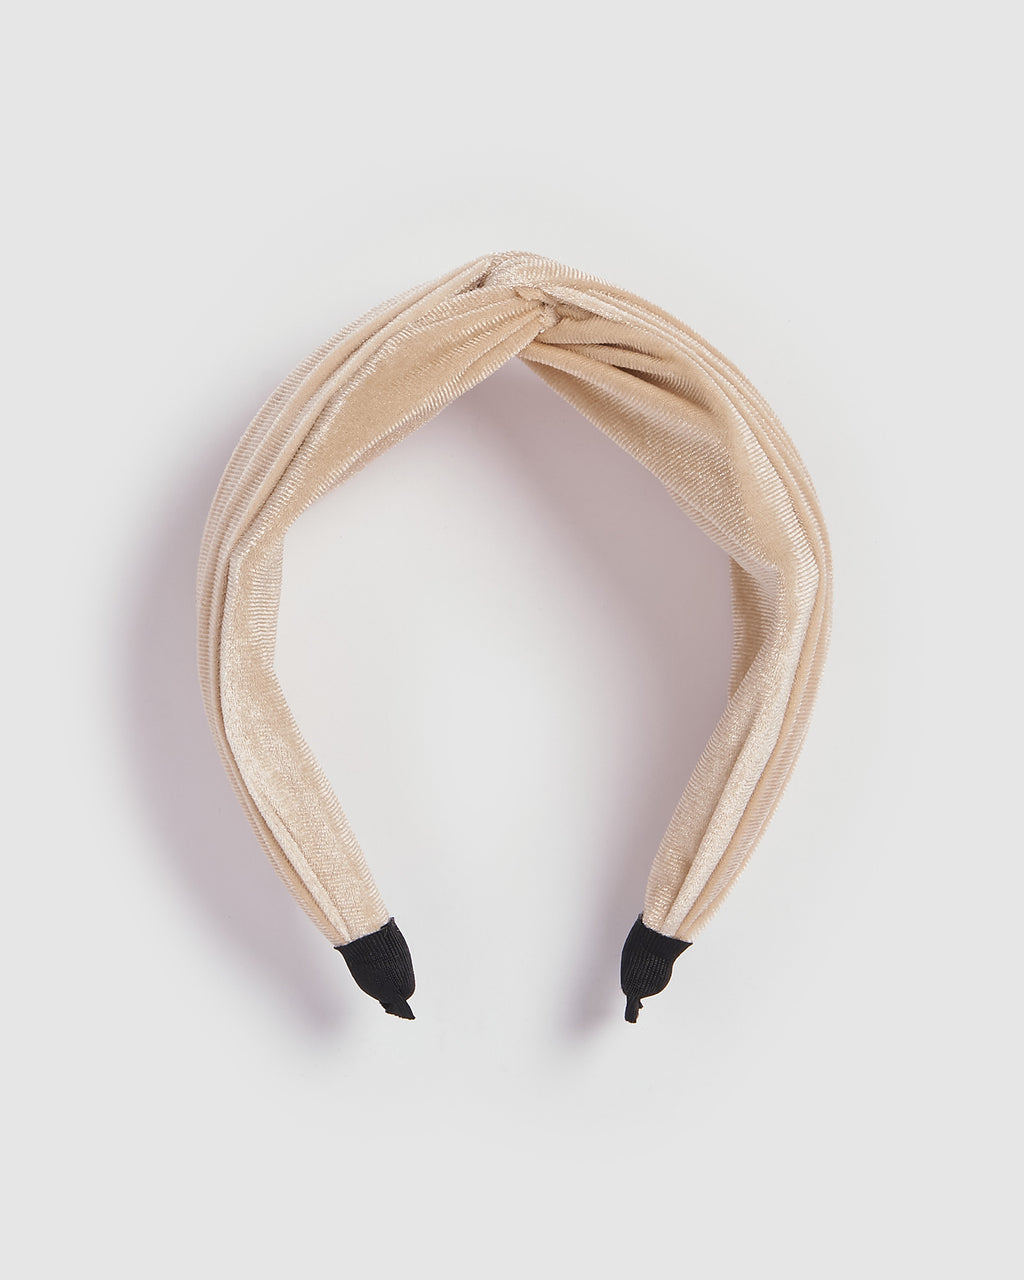 Izoa Melbourne Velvet Headband Cream